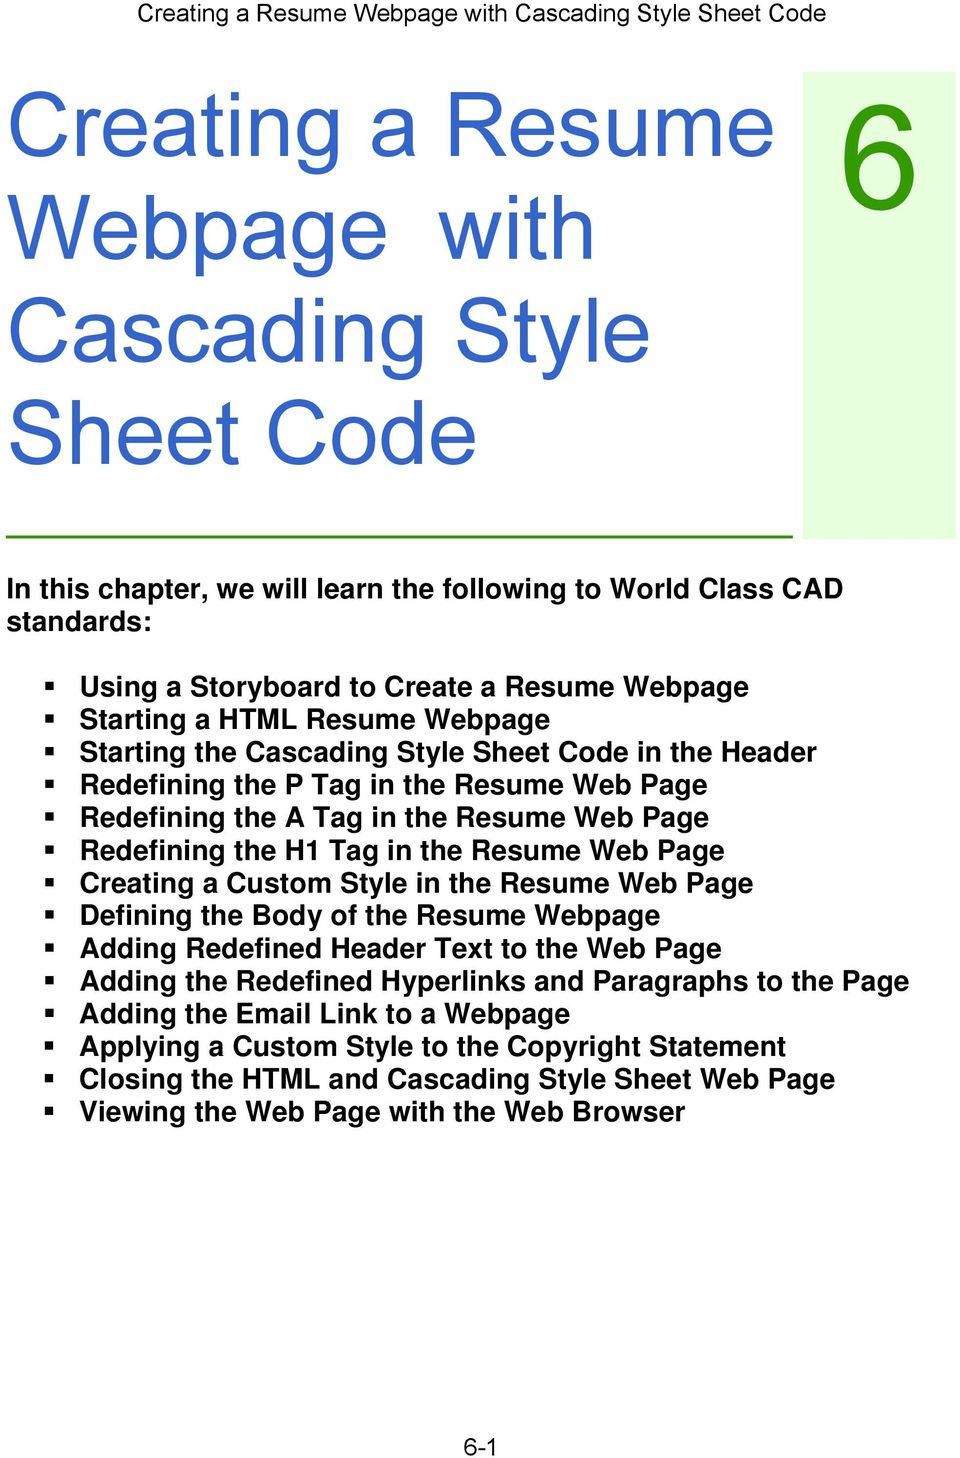 Resume Web Page Creating a Custom Style in the Resume Web Page Defining the Body of the Resume Webpage Adding Redefined Header Text to the Web Page Adding the Redefined Hyperlinks and